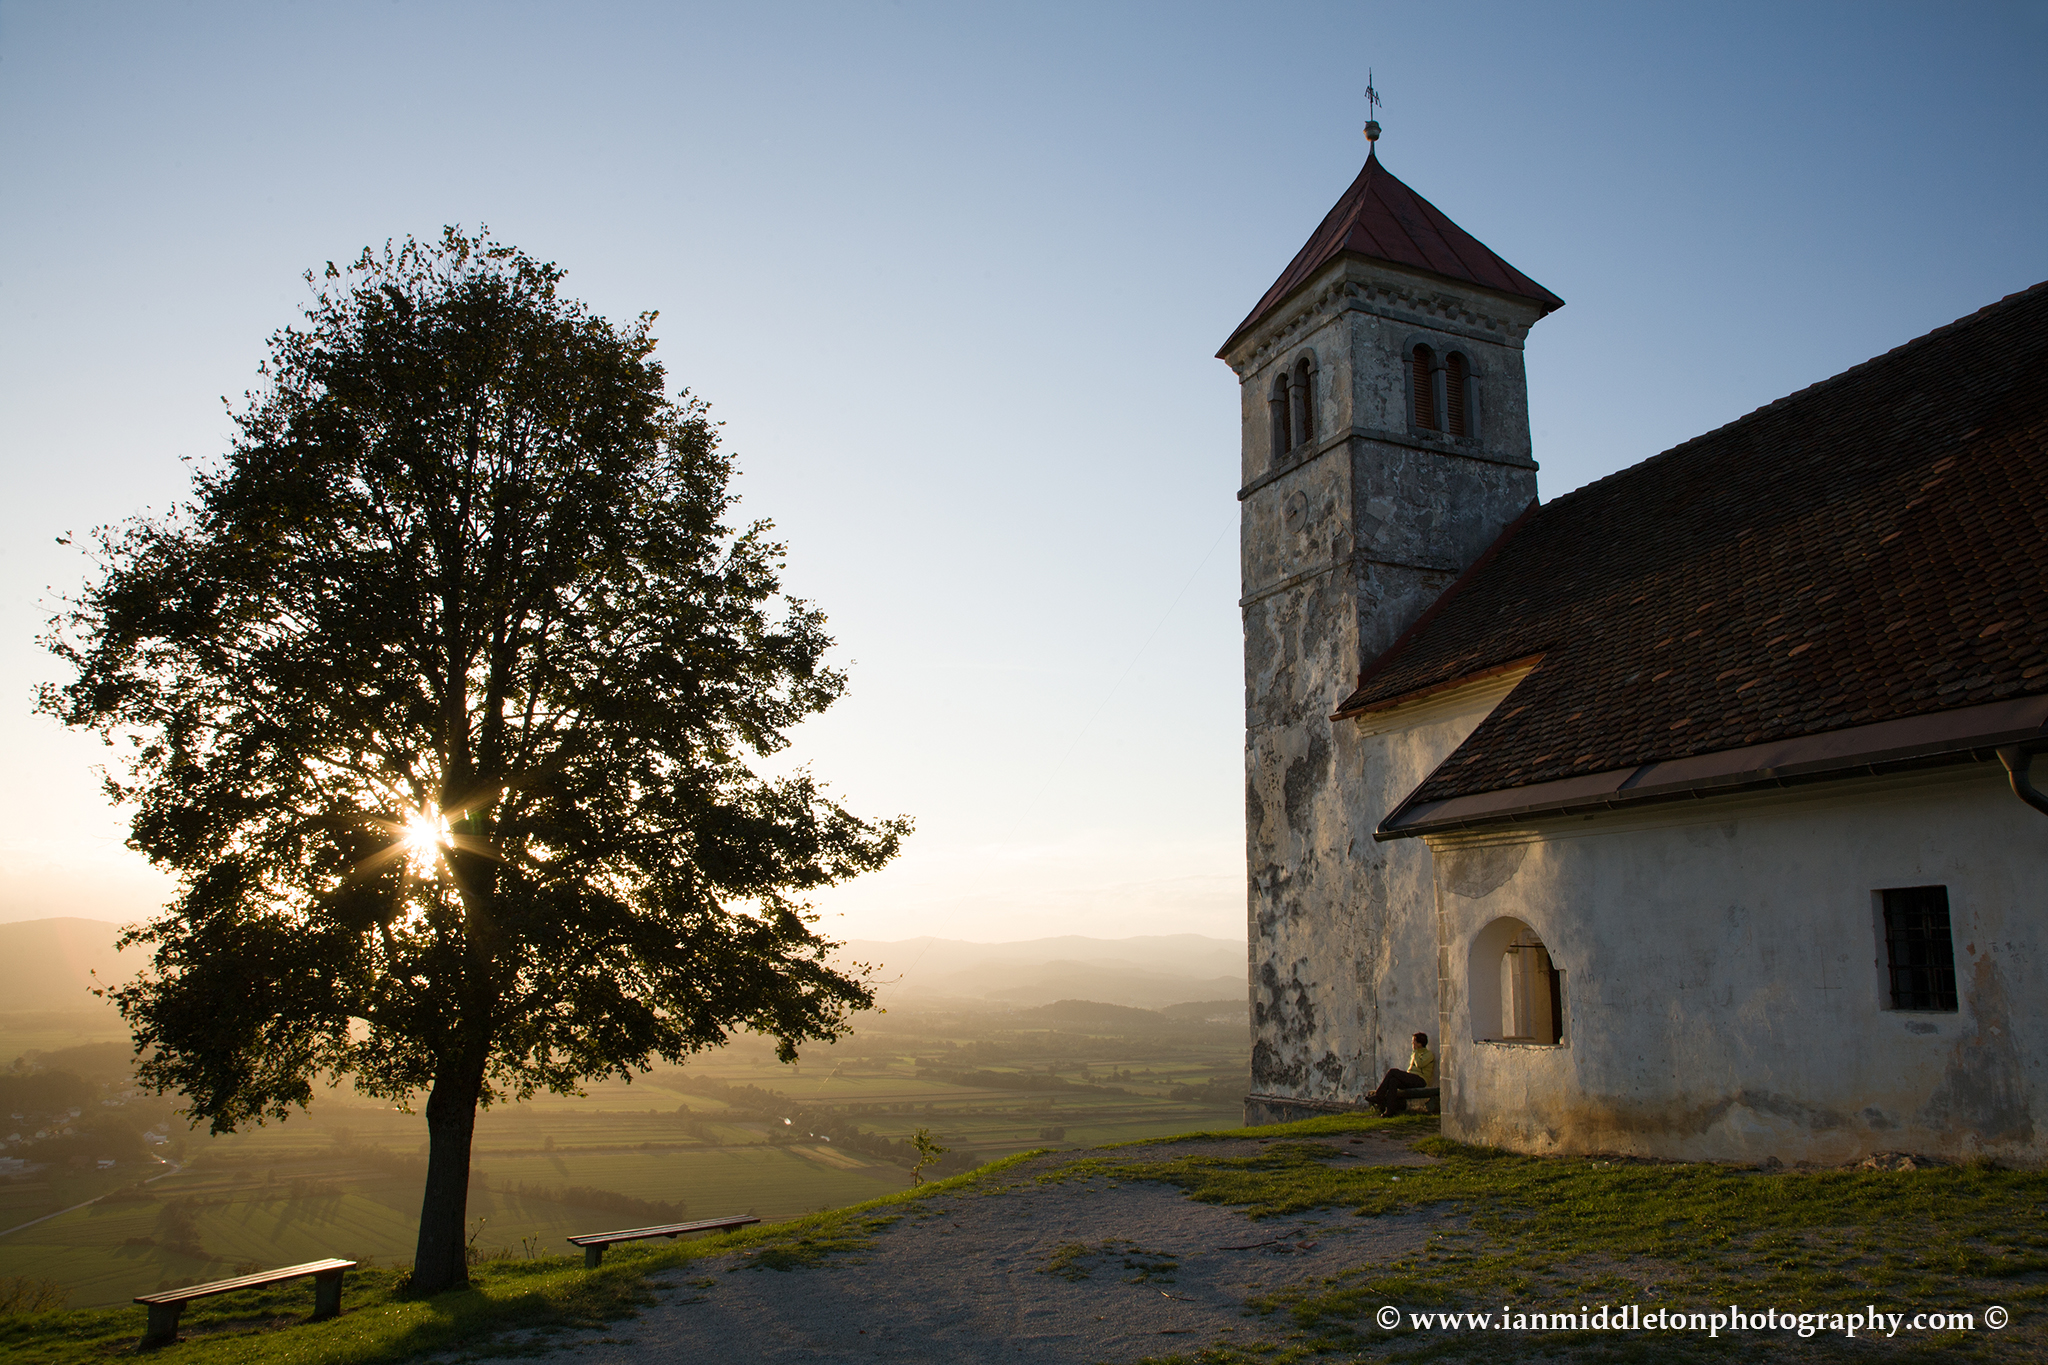 Soft light falls over the church of Saint Anna (Sveta Ana) as the sun falls down behind a nearby tree causing a sunburst through the leaves and branches. Sveta Ana is perched upon an exposed hill overlooking the Ljubljansko Barje (Ljubljana marsh) near the village of Preserje. The views from this hill are spectacular and many locals seem to come here for the evening.